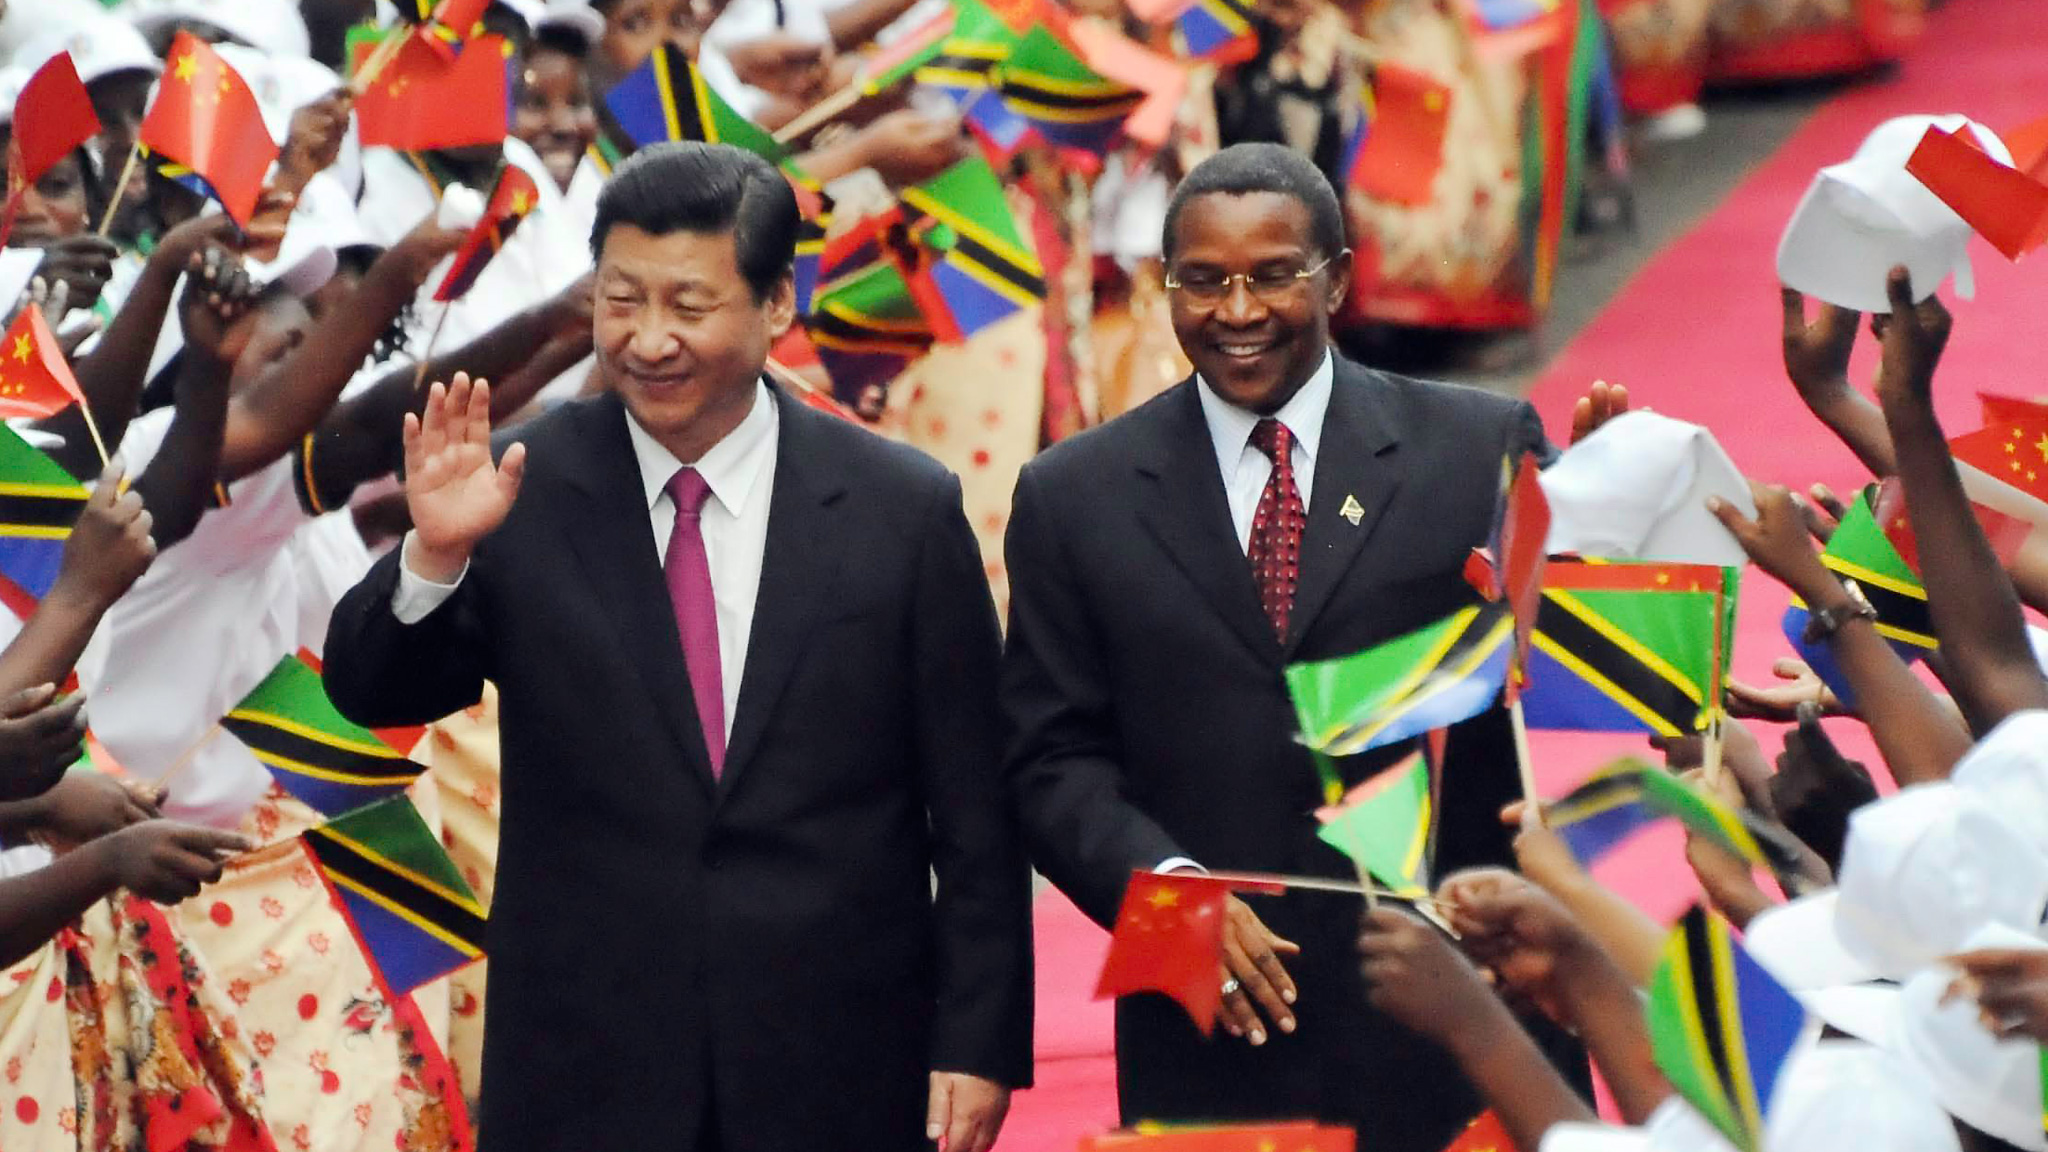 tibet and china relationship with africa